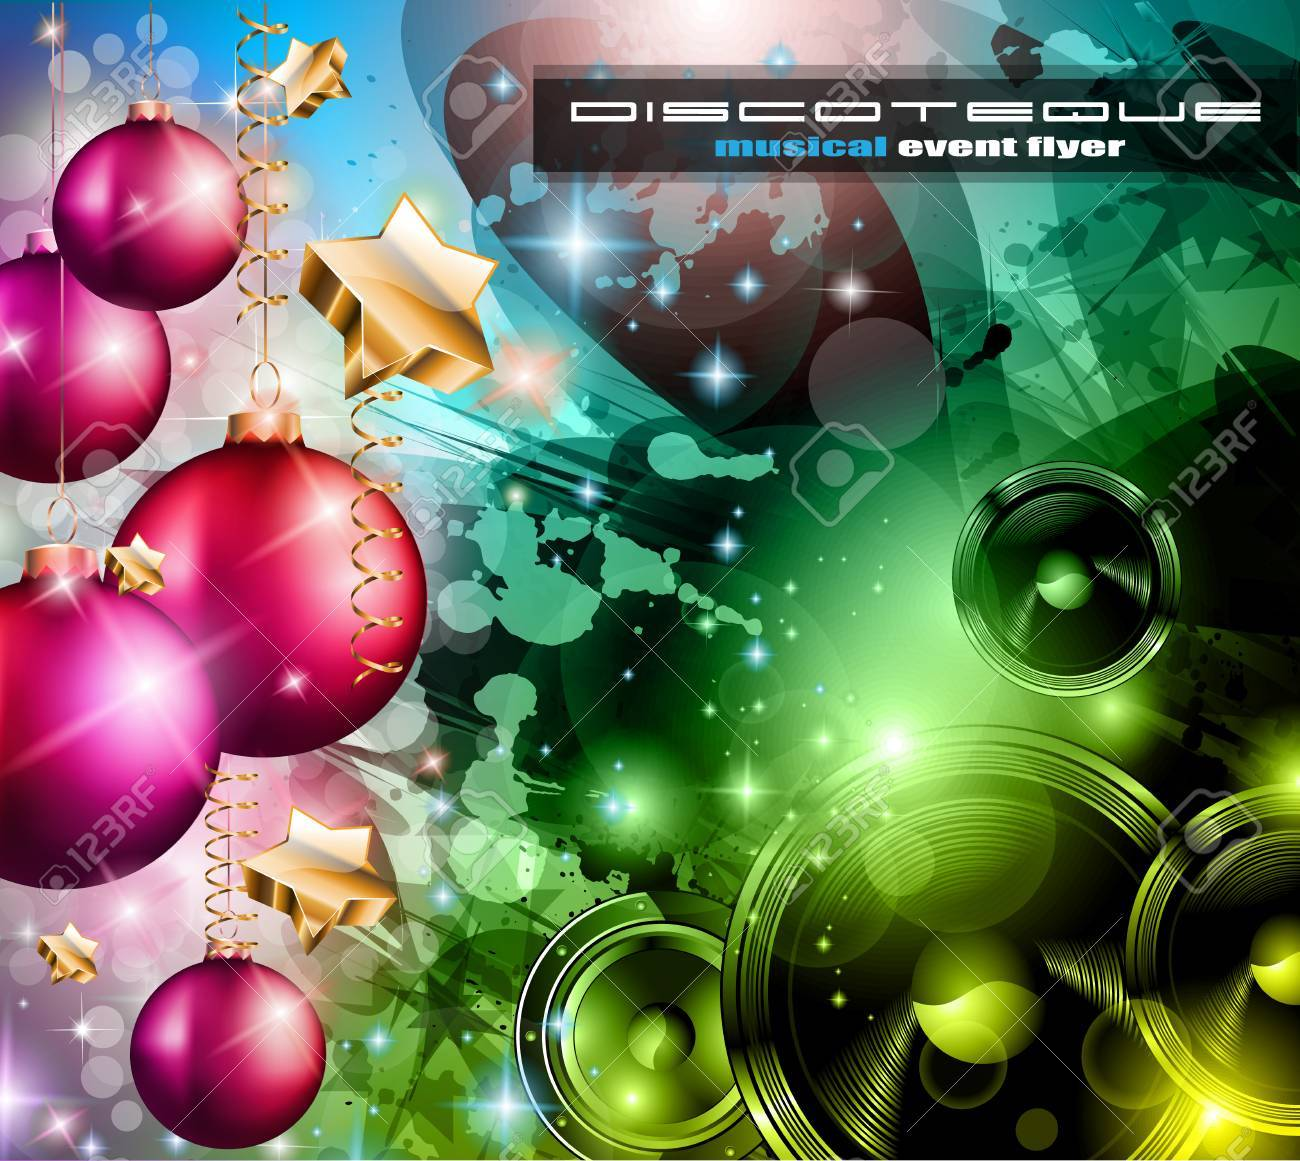 2014 Happy new year Party background for flyers and music events! Stock Vector - 24498134